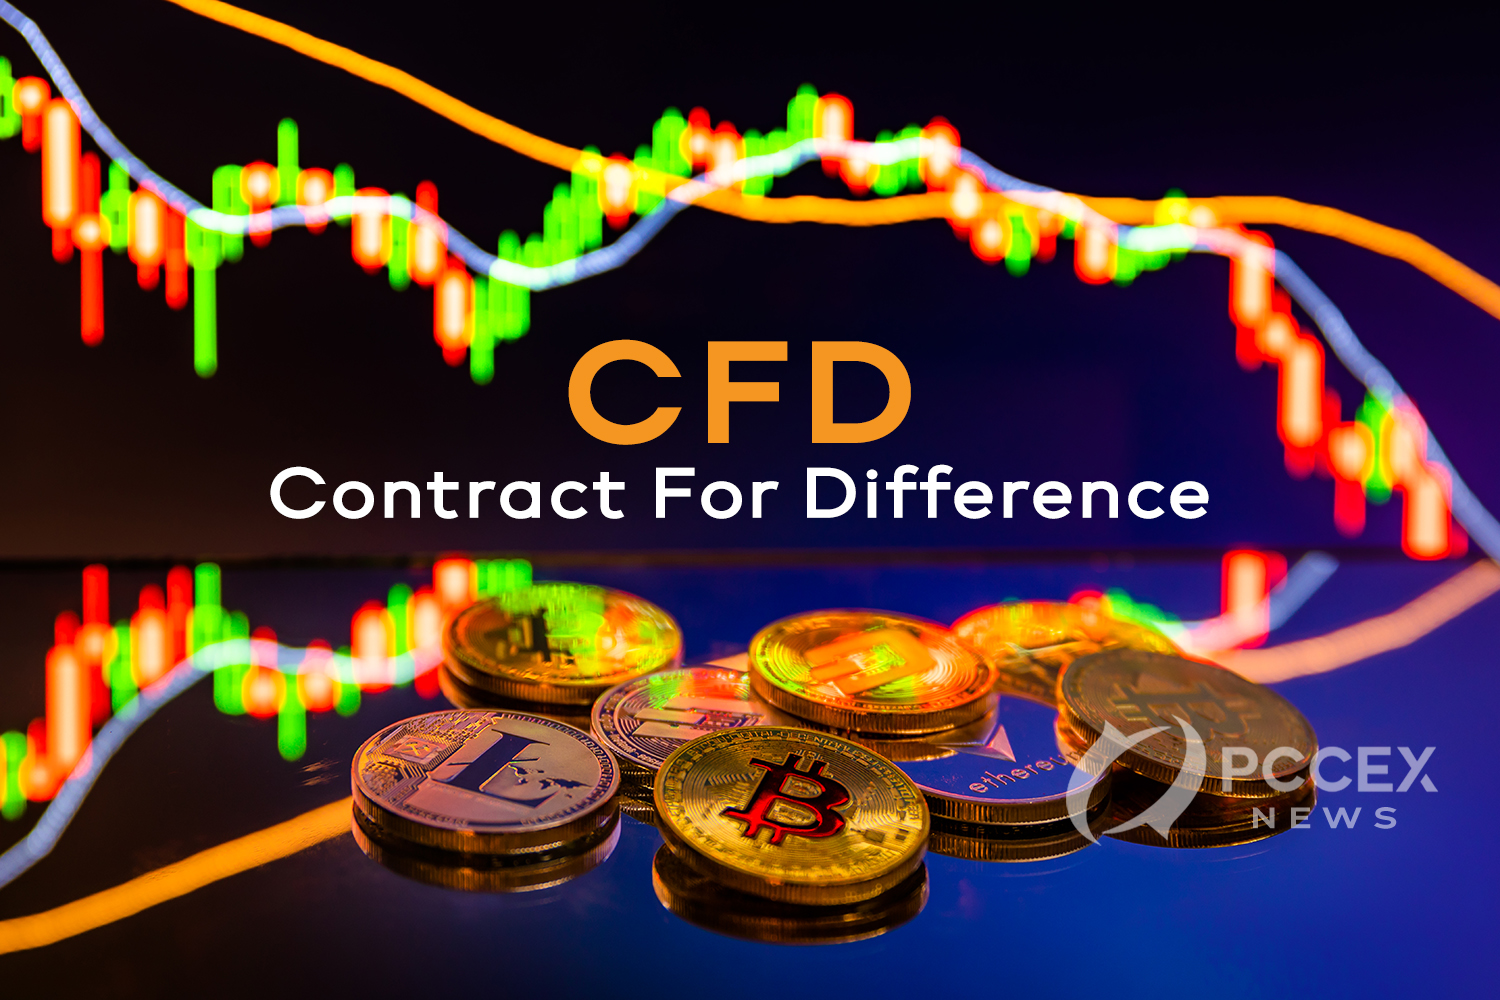 What Is Contract For Difference (CFD) In Cryptocurrency